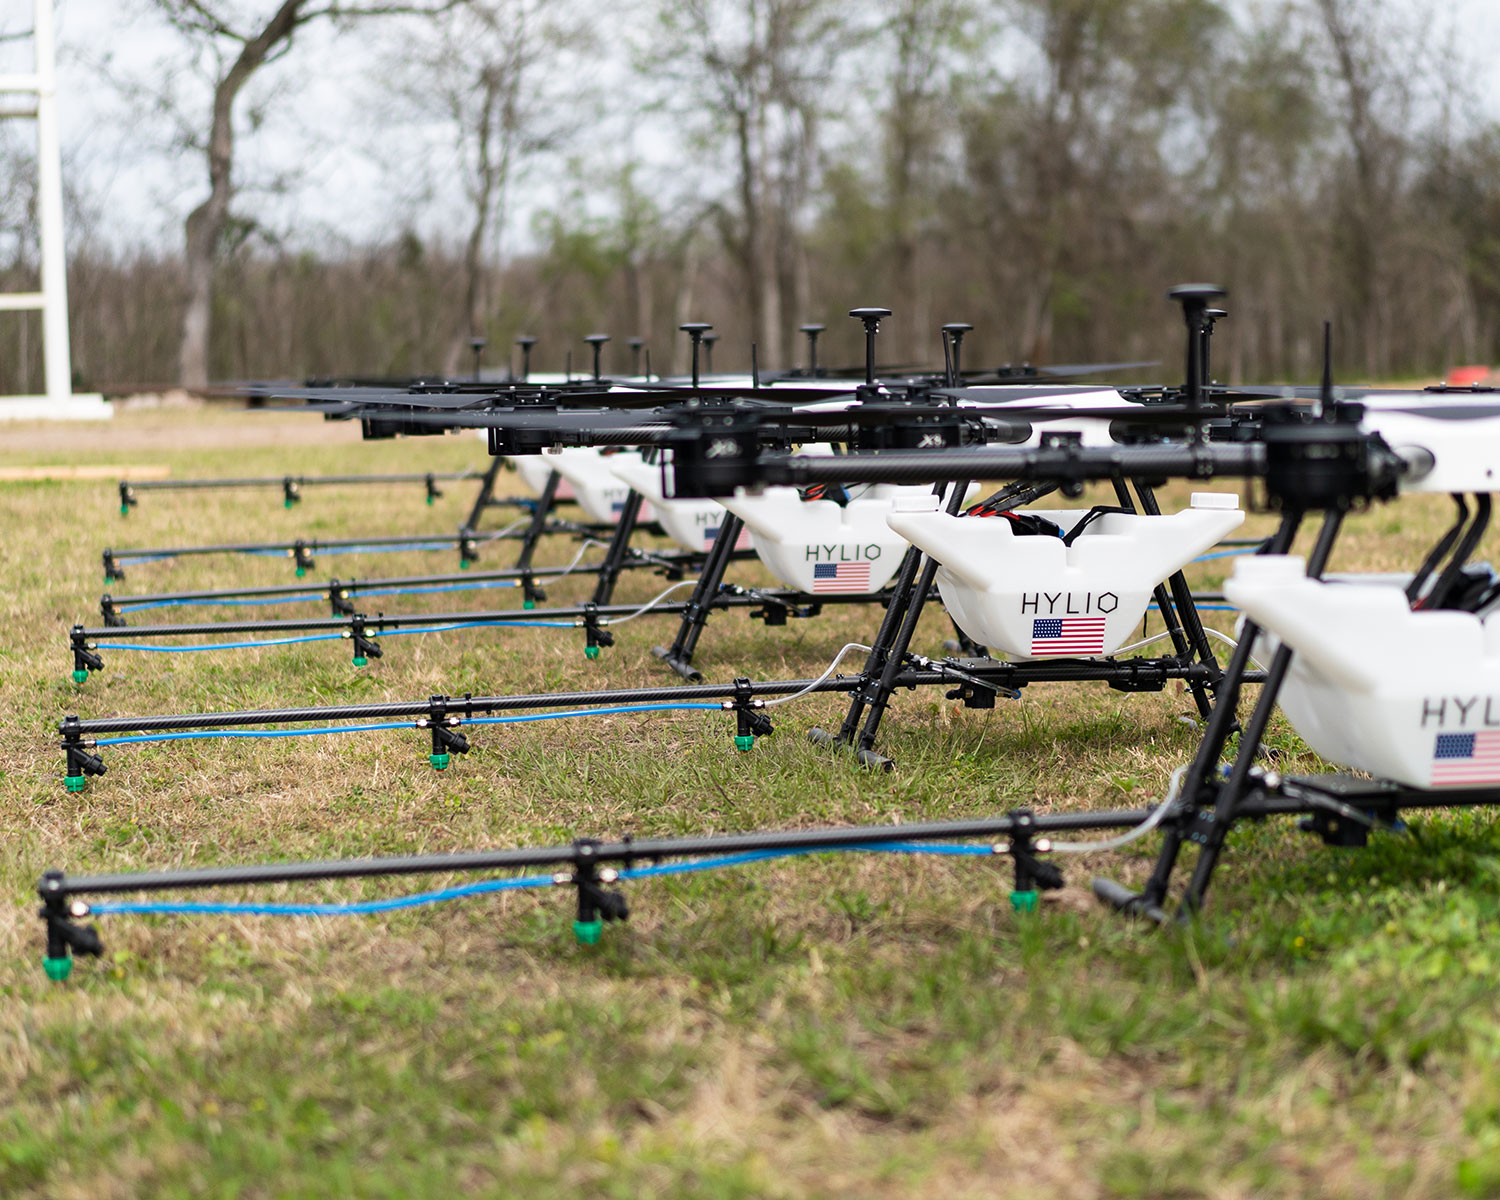 fleet of autonomous agriculture spray drones